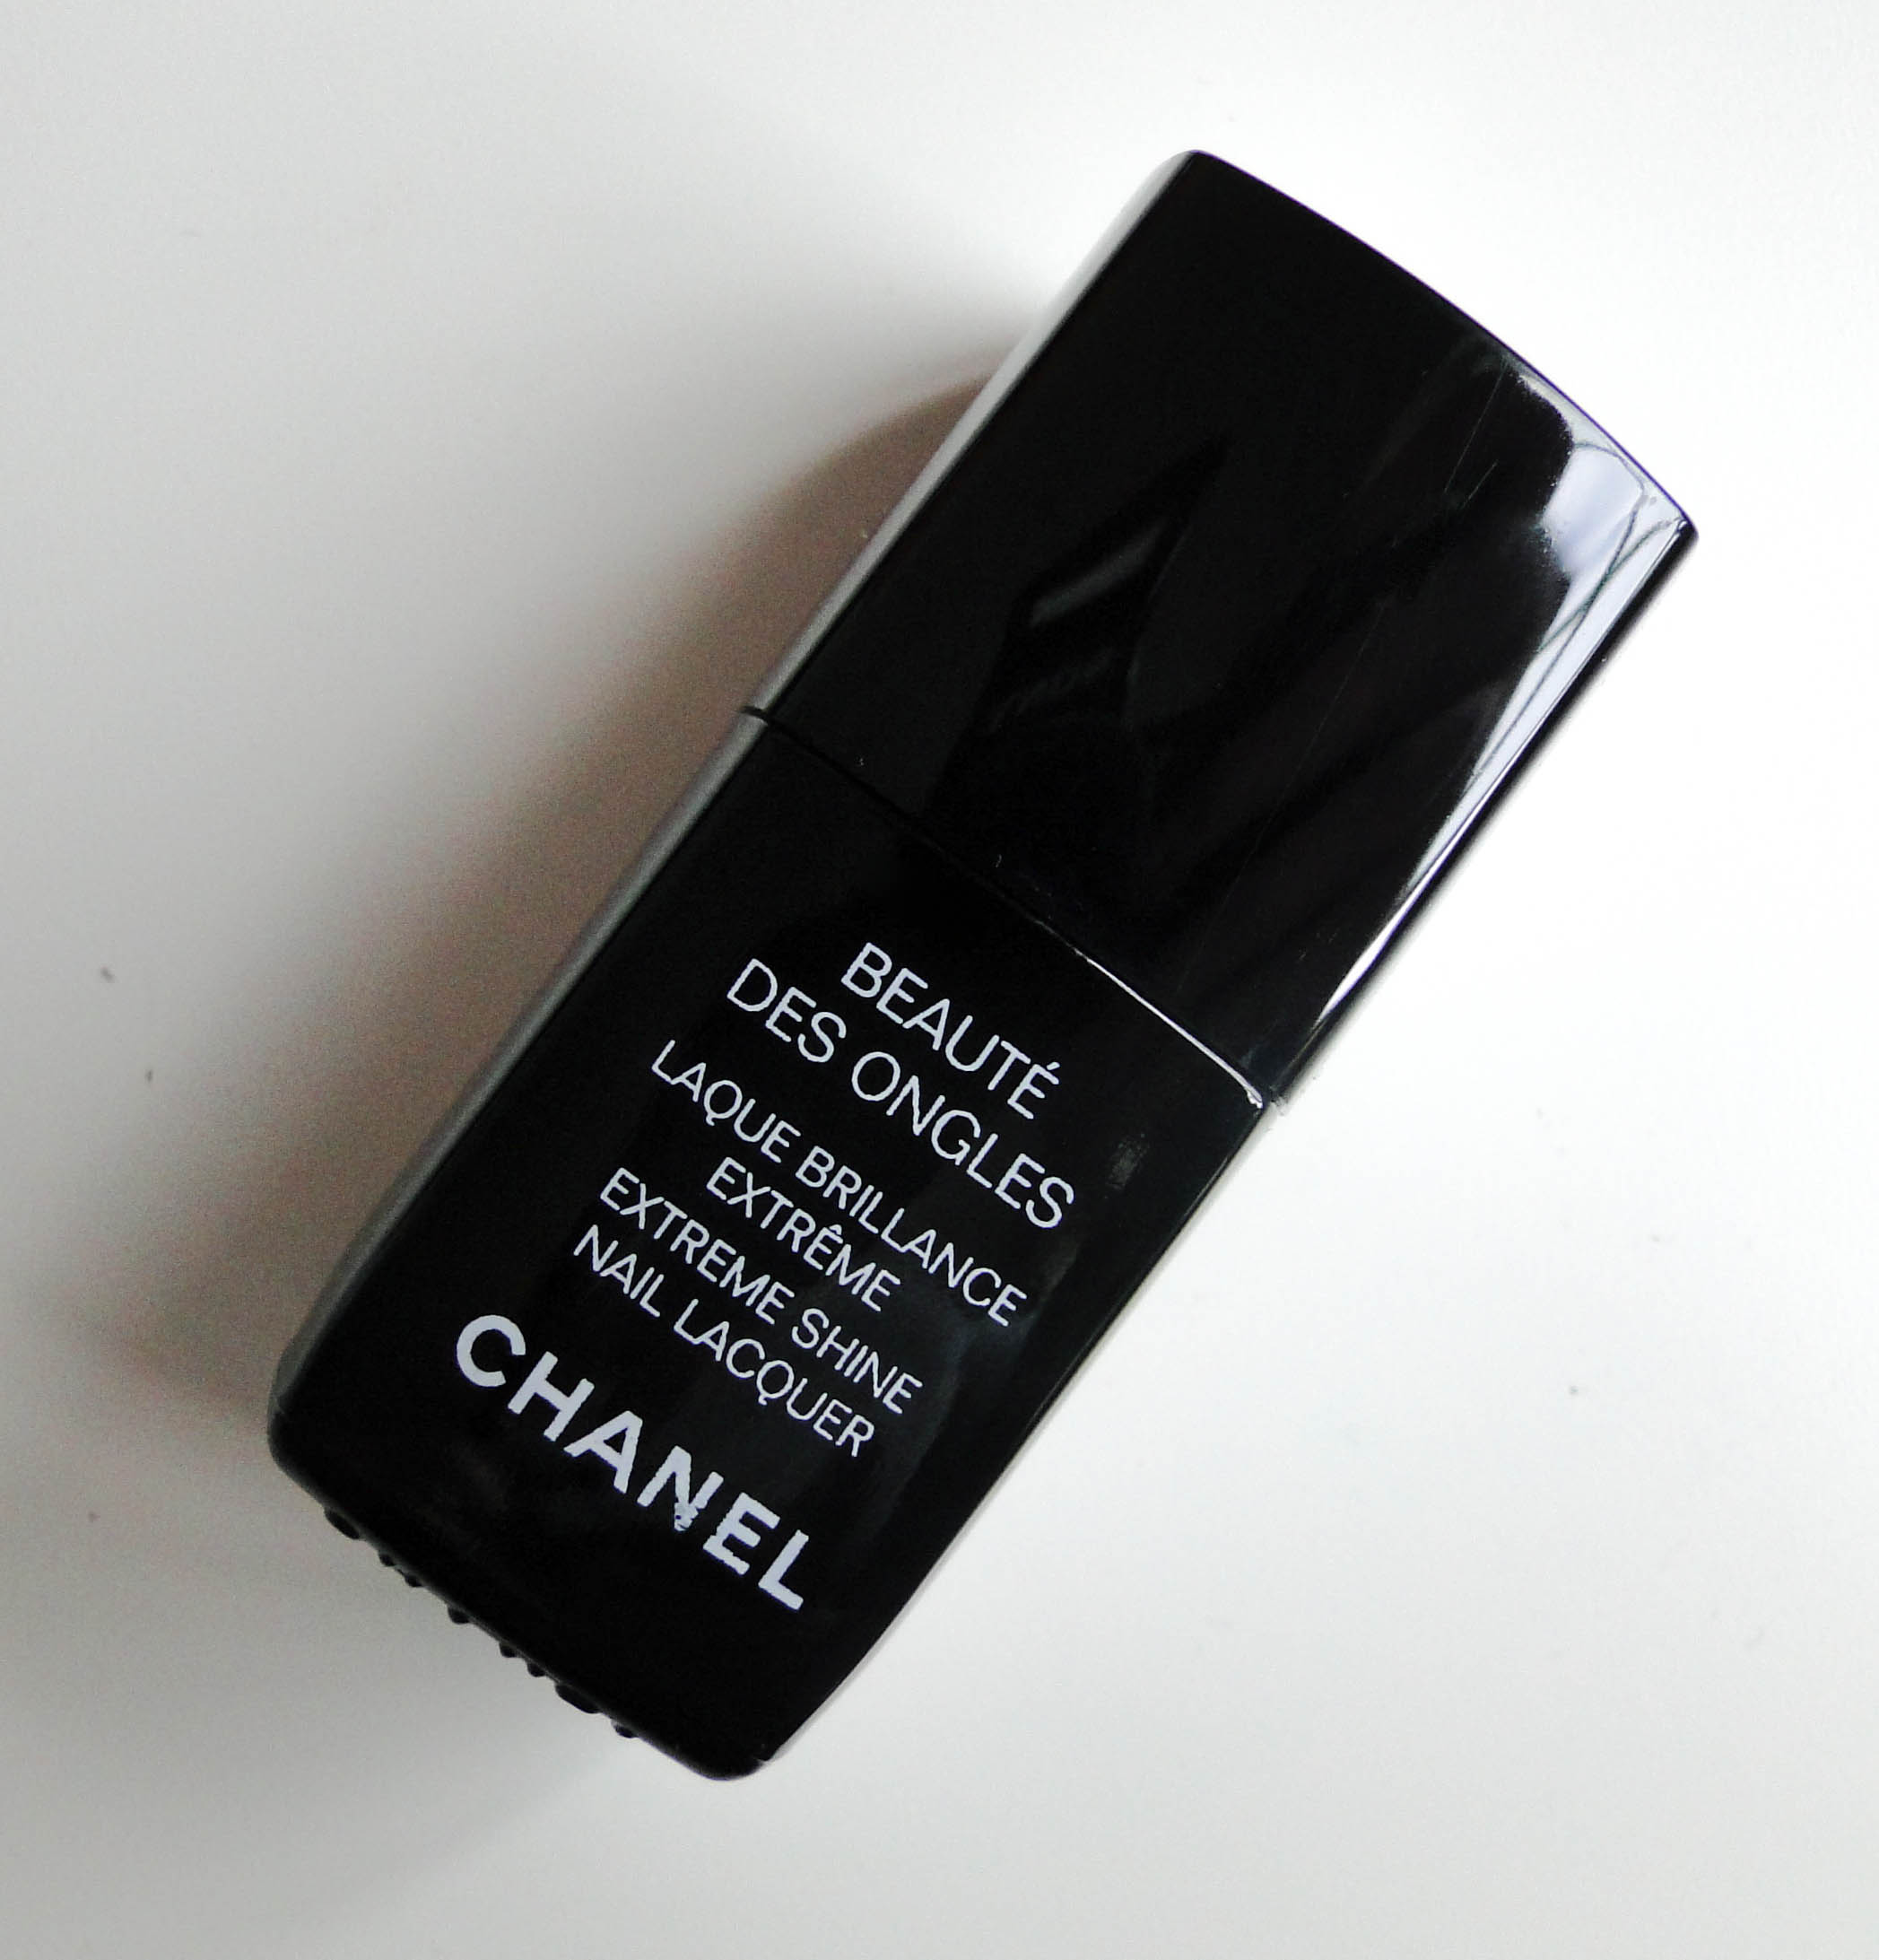 Chanel Beaute Des Ongles Extreme Shine Nail Lacquer-2